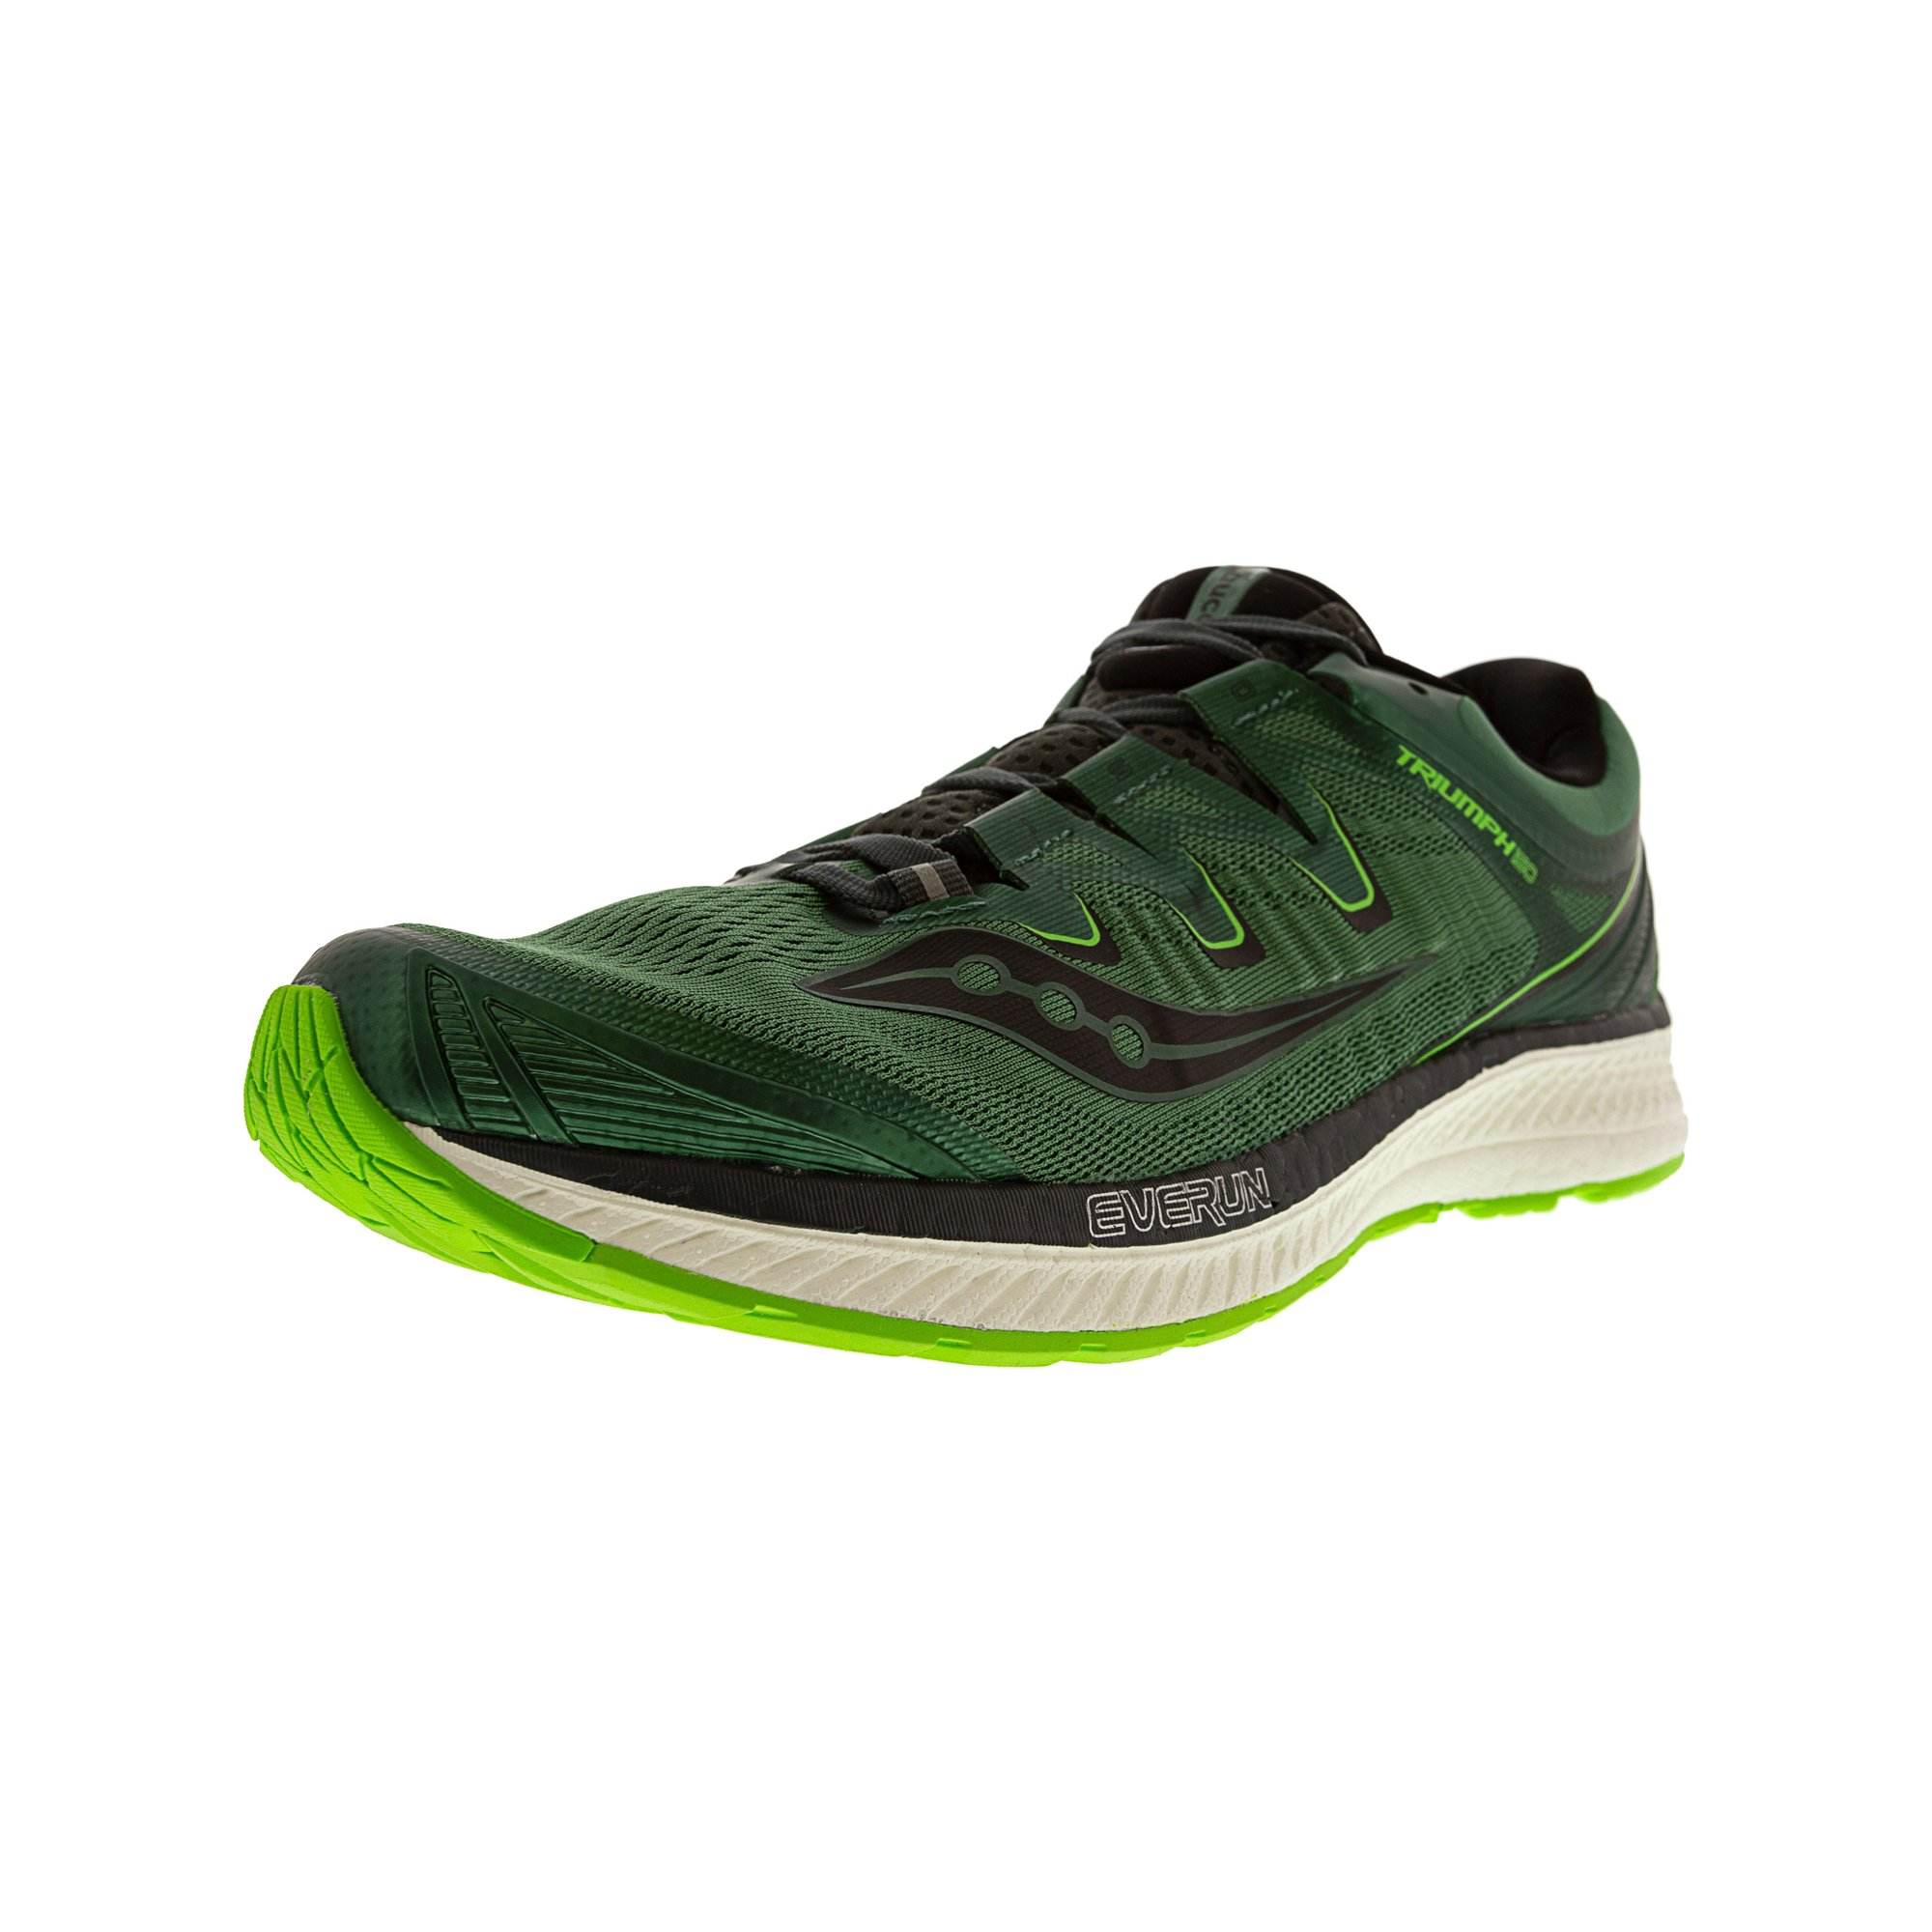 Saucony Men's Triumph Iso 4 Green Black Ankle High Mesh Running Shoe 11.5M